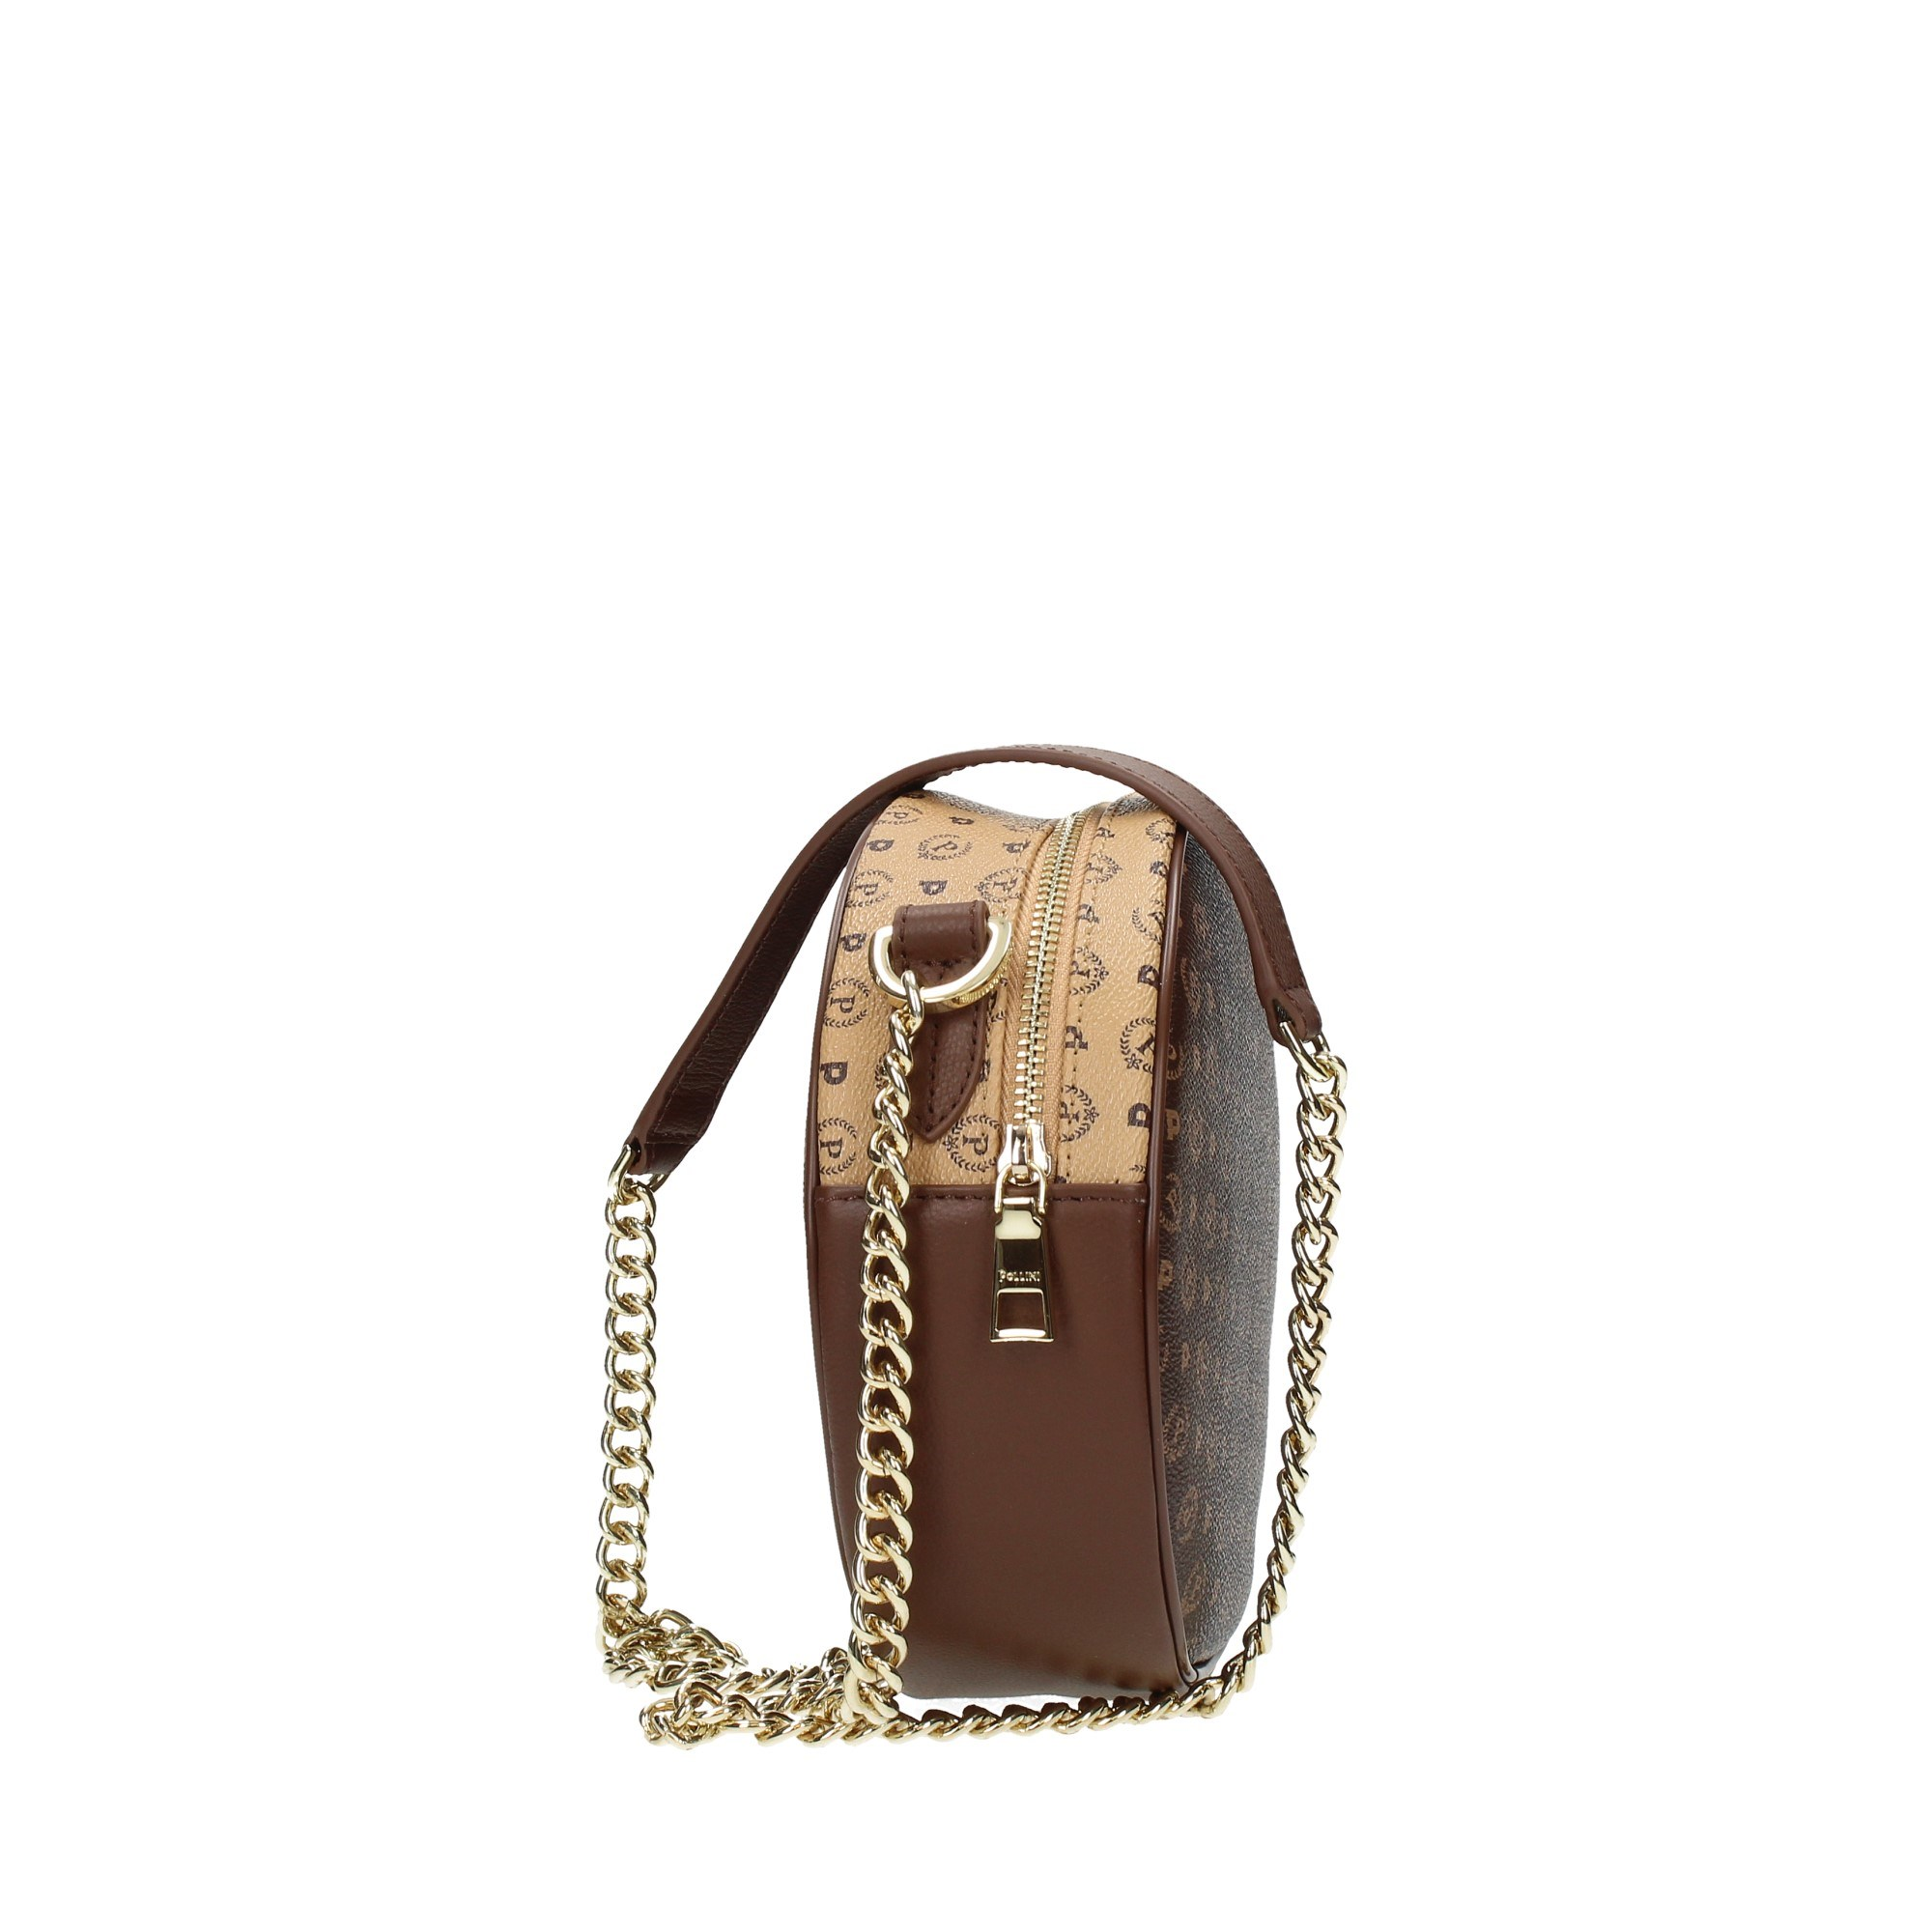 Pollini Accessories Women Shoulder Bags Logo TE8455PP0B/Q53